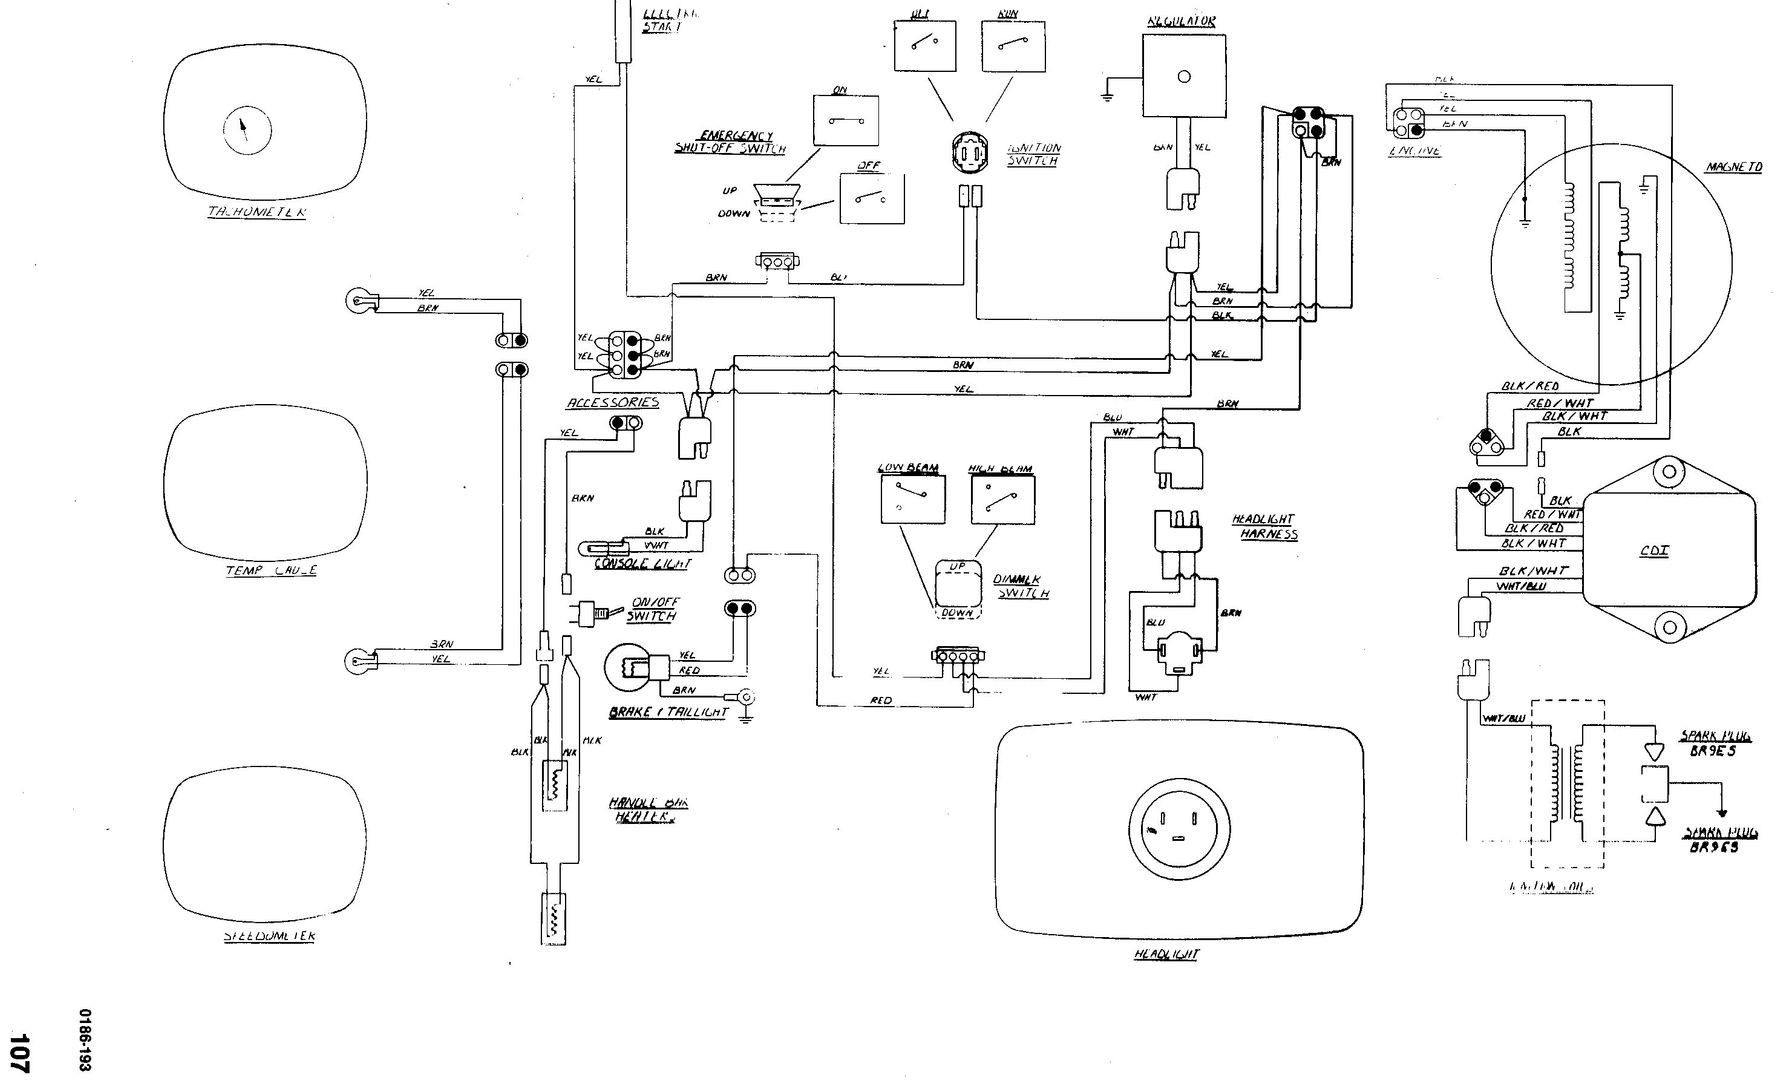 New Wiring Diagram For Silvertone Guitar Diagram